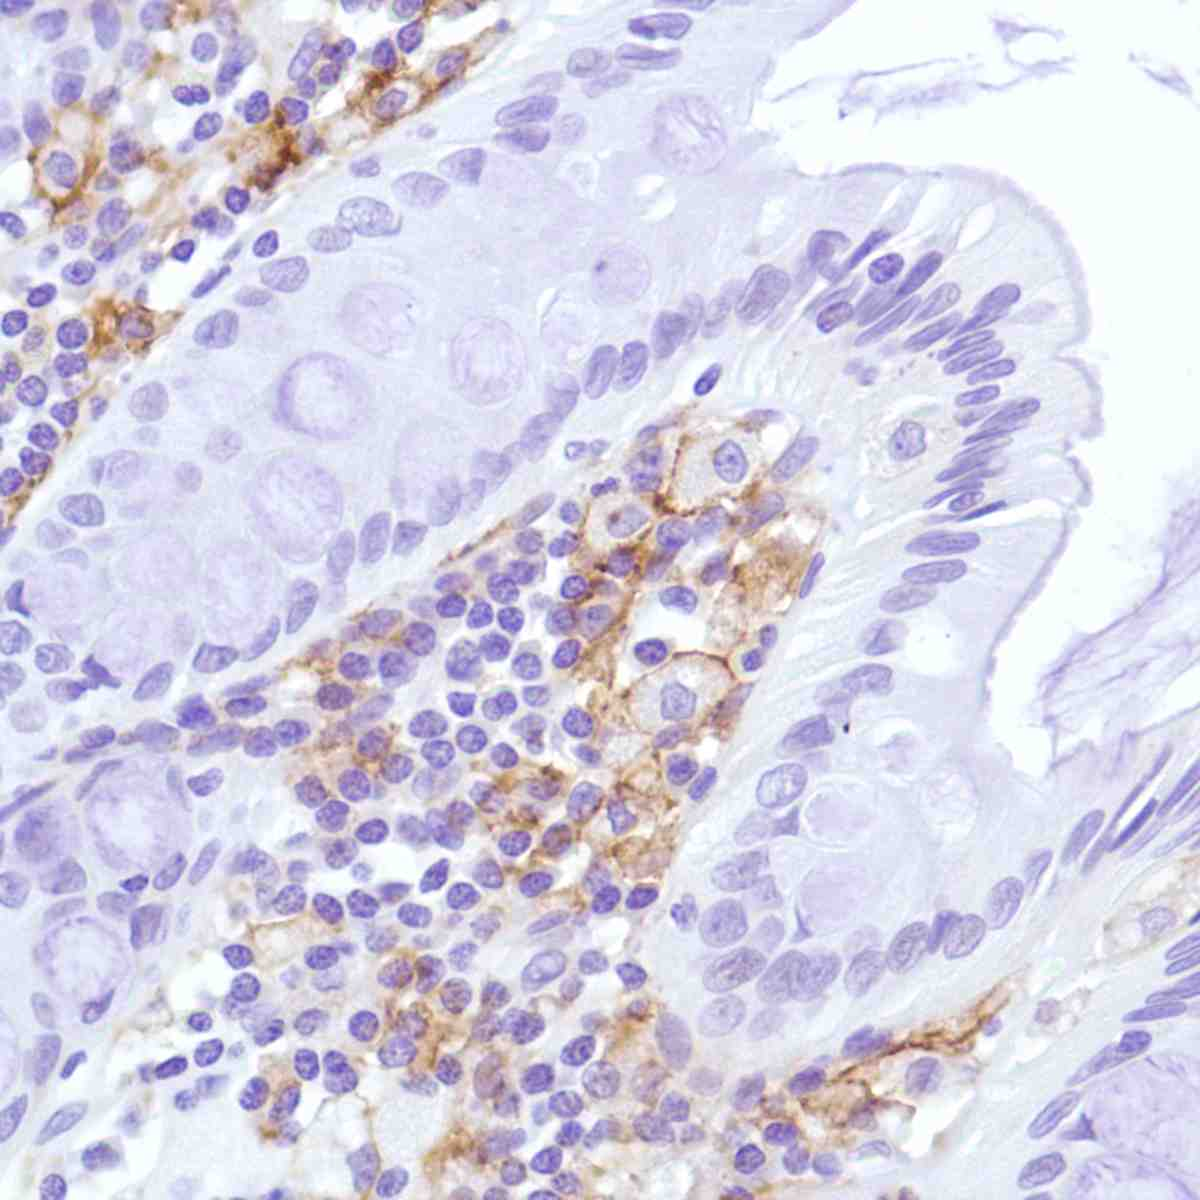 Human Colon stained with anti-CD169 antibody